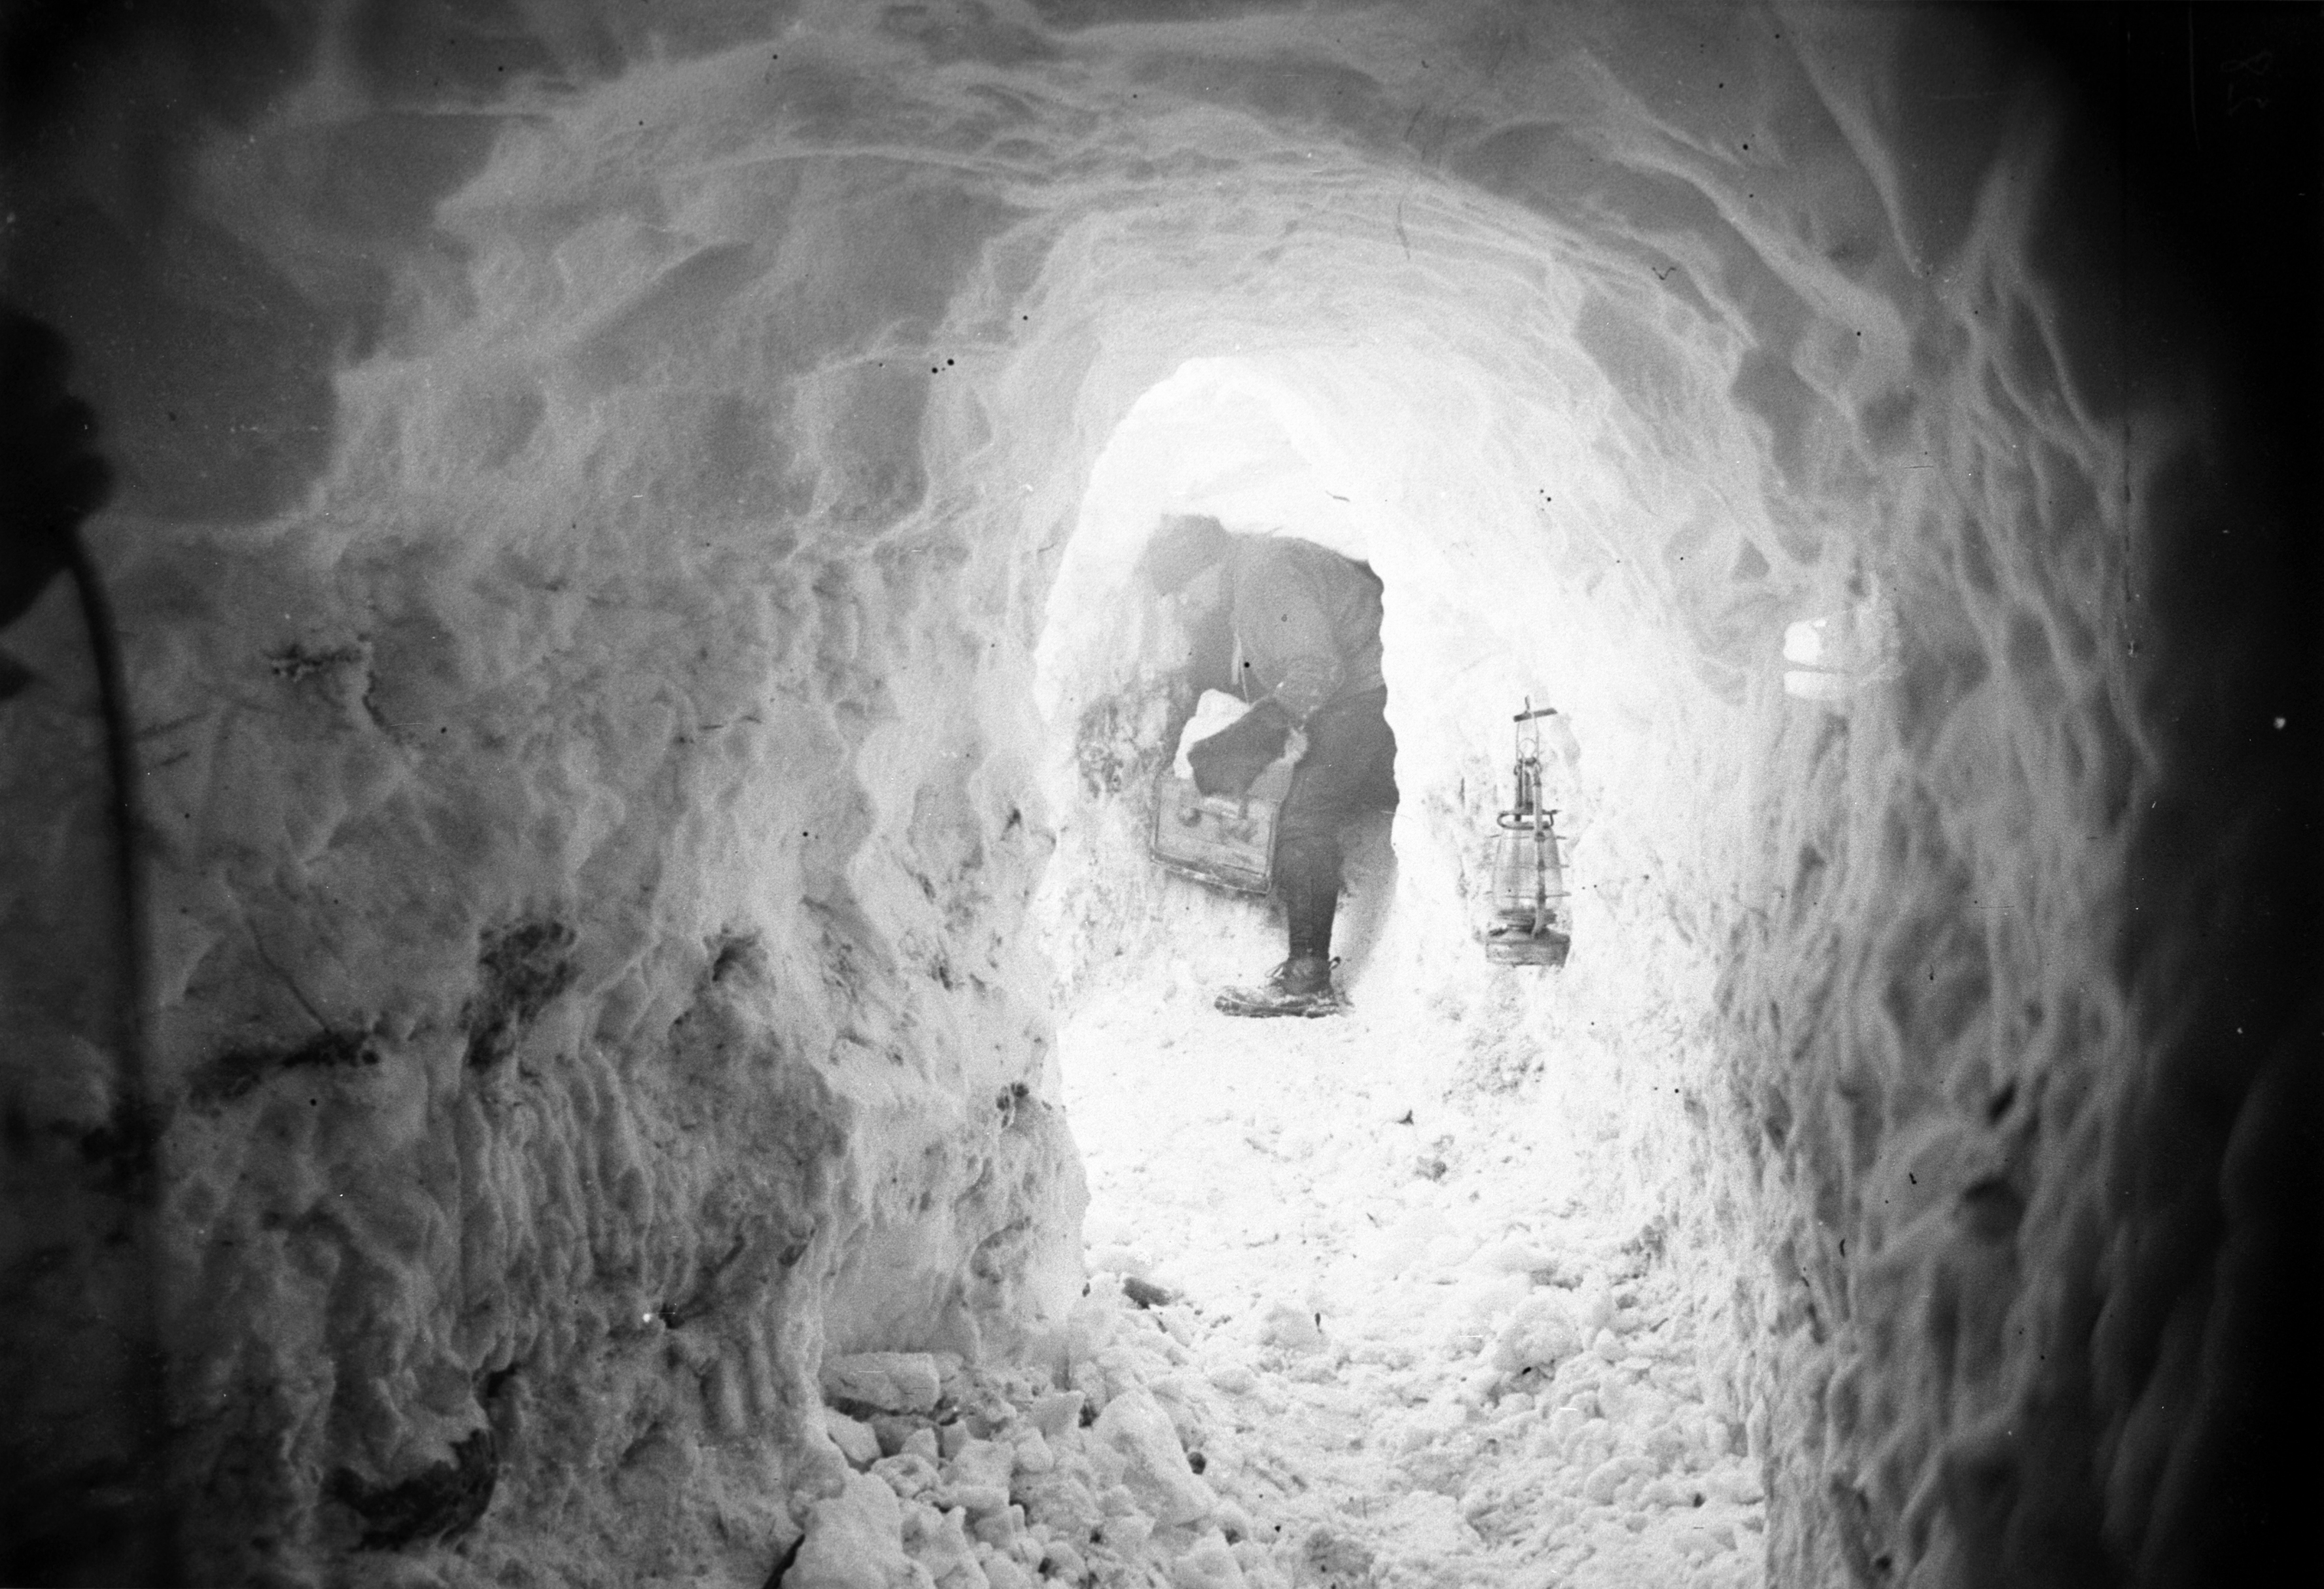 Xavier Mertz Bringing in a box of Ice through the Catacombs, Antarctica,  1912, by Frank Hurley